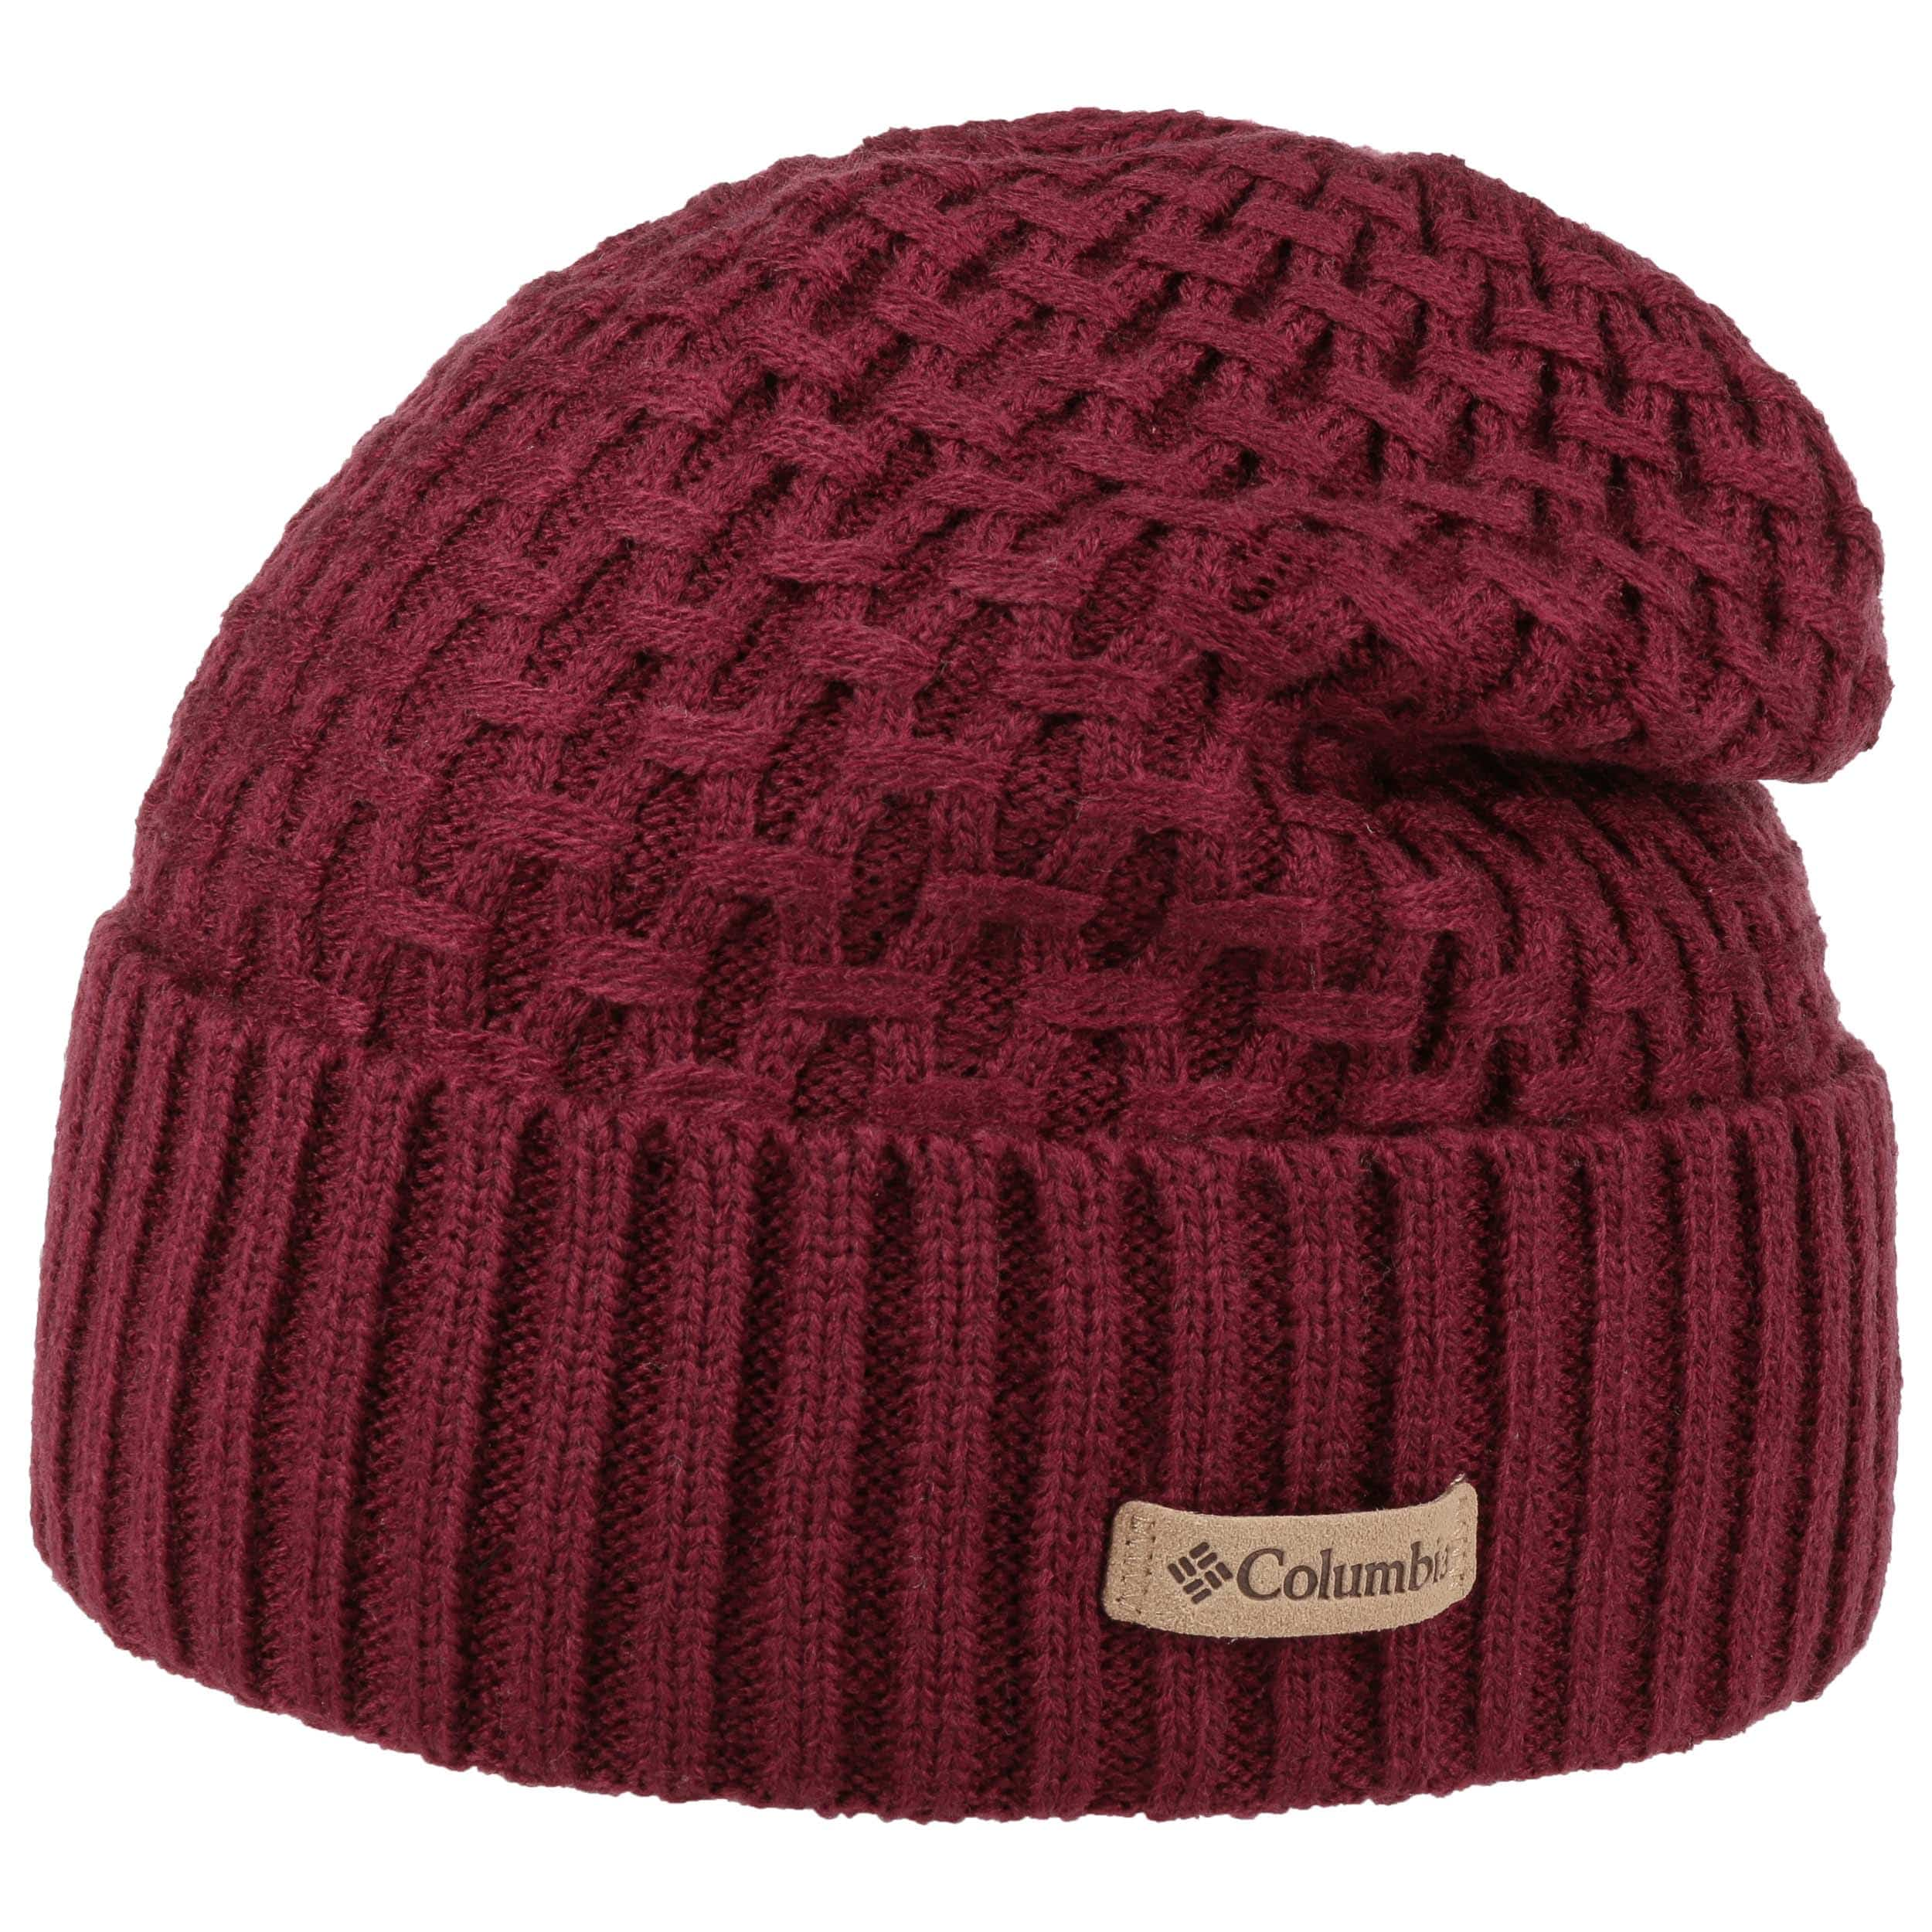 3dfc224ecb2 Hideaway Haven™ Cabled Beanie by Columbia - bordeaux Marsala 1 ...